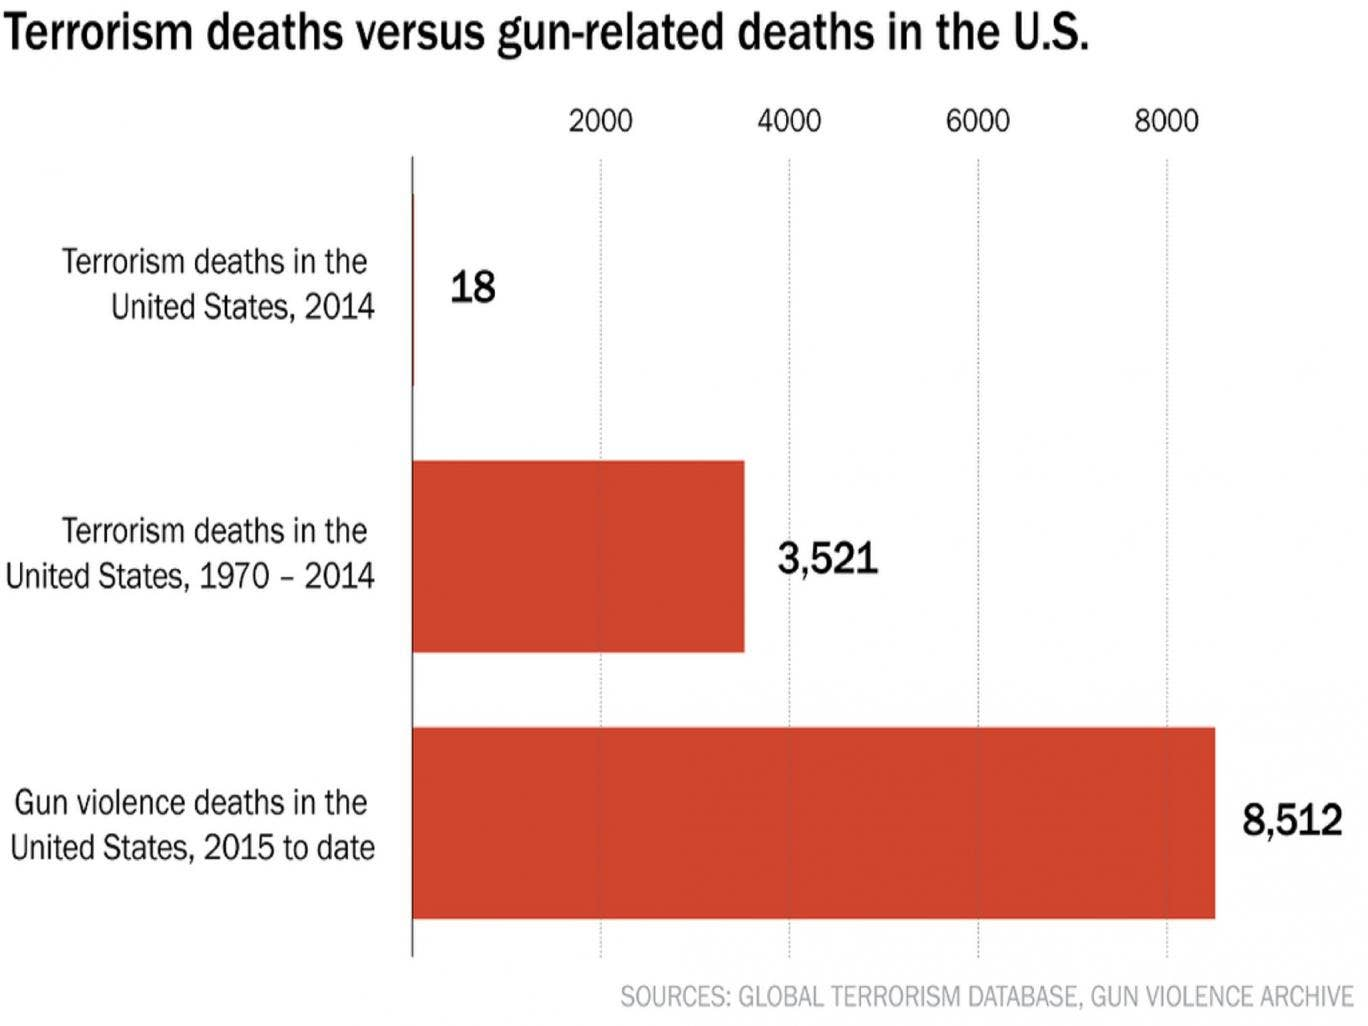 Terrorism deaths versus gun-related deaths in the US